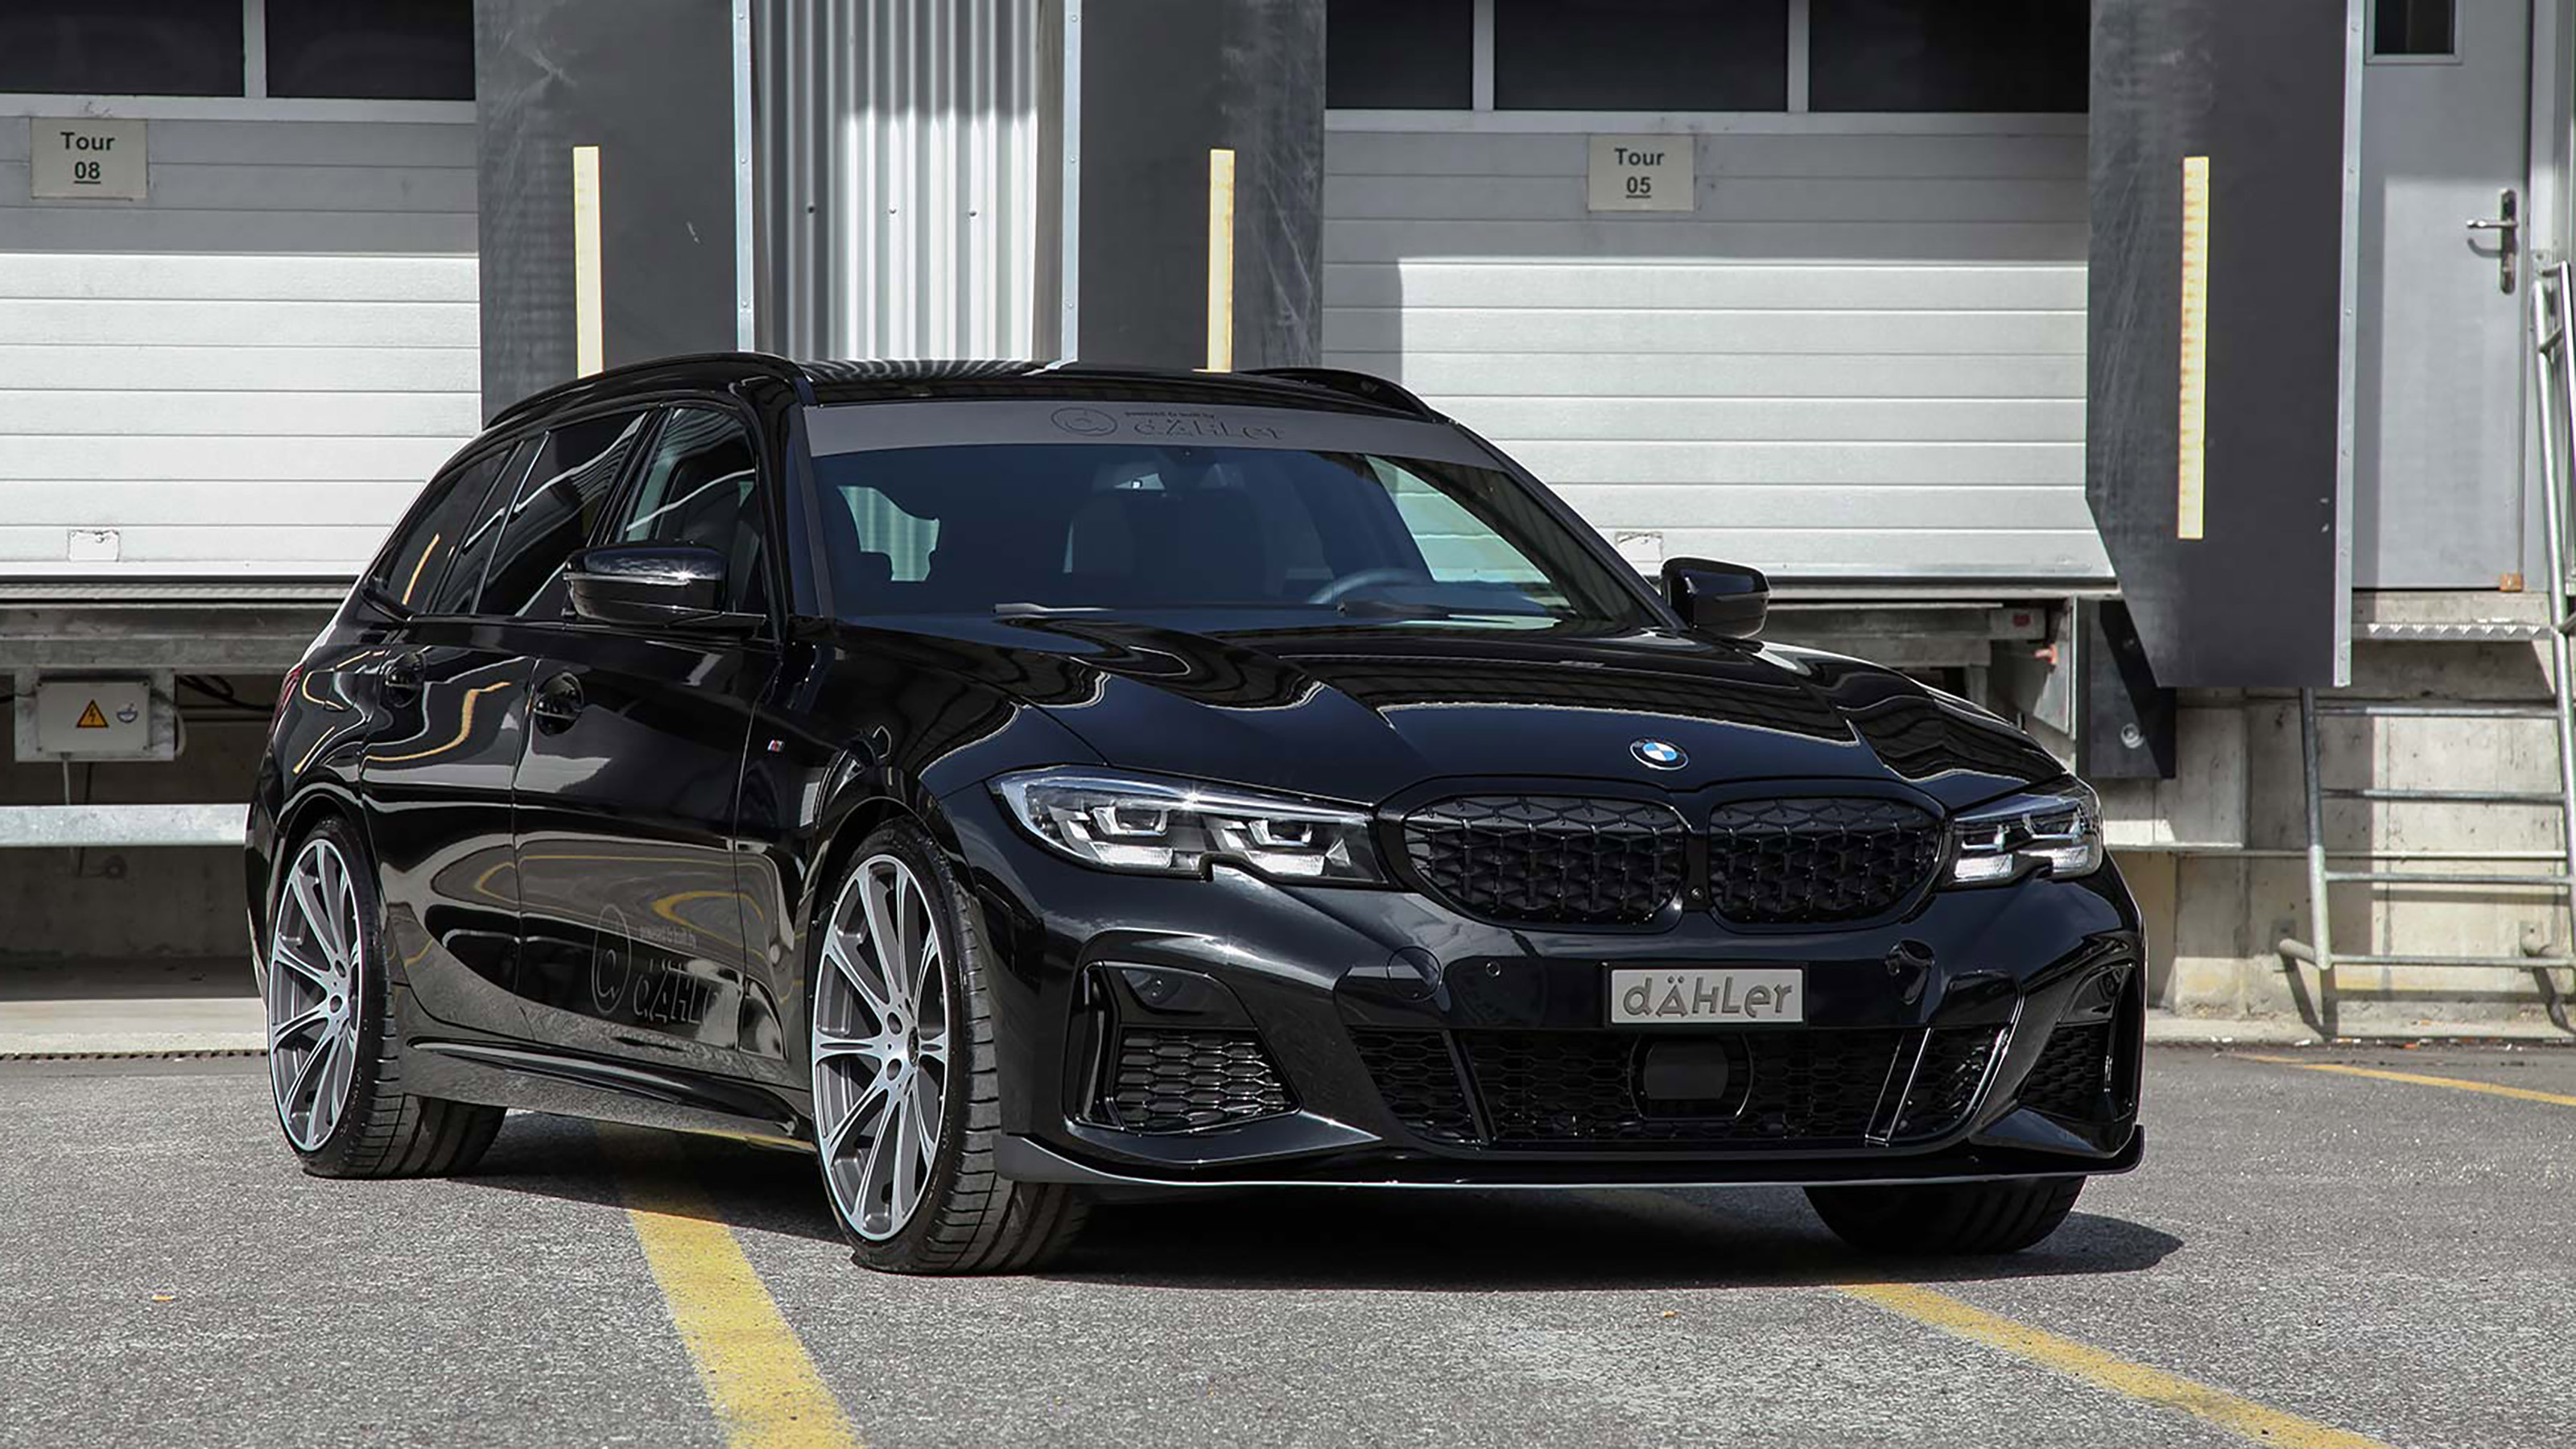 This Dahler Bmw M340i Xdrive Is An M3 Touring Alternative Evo